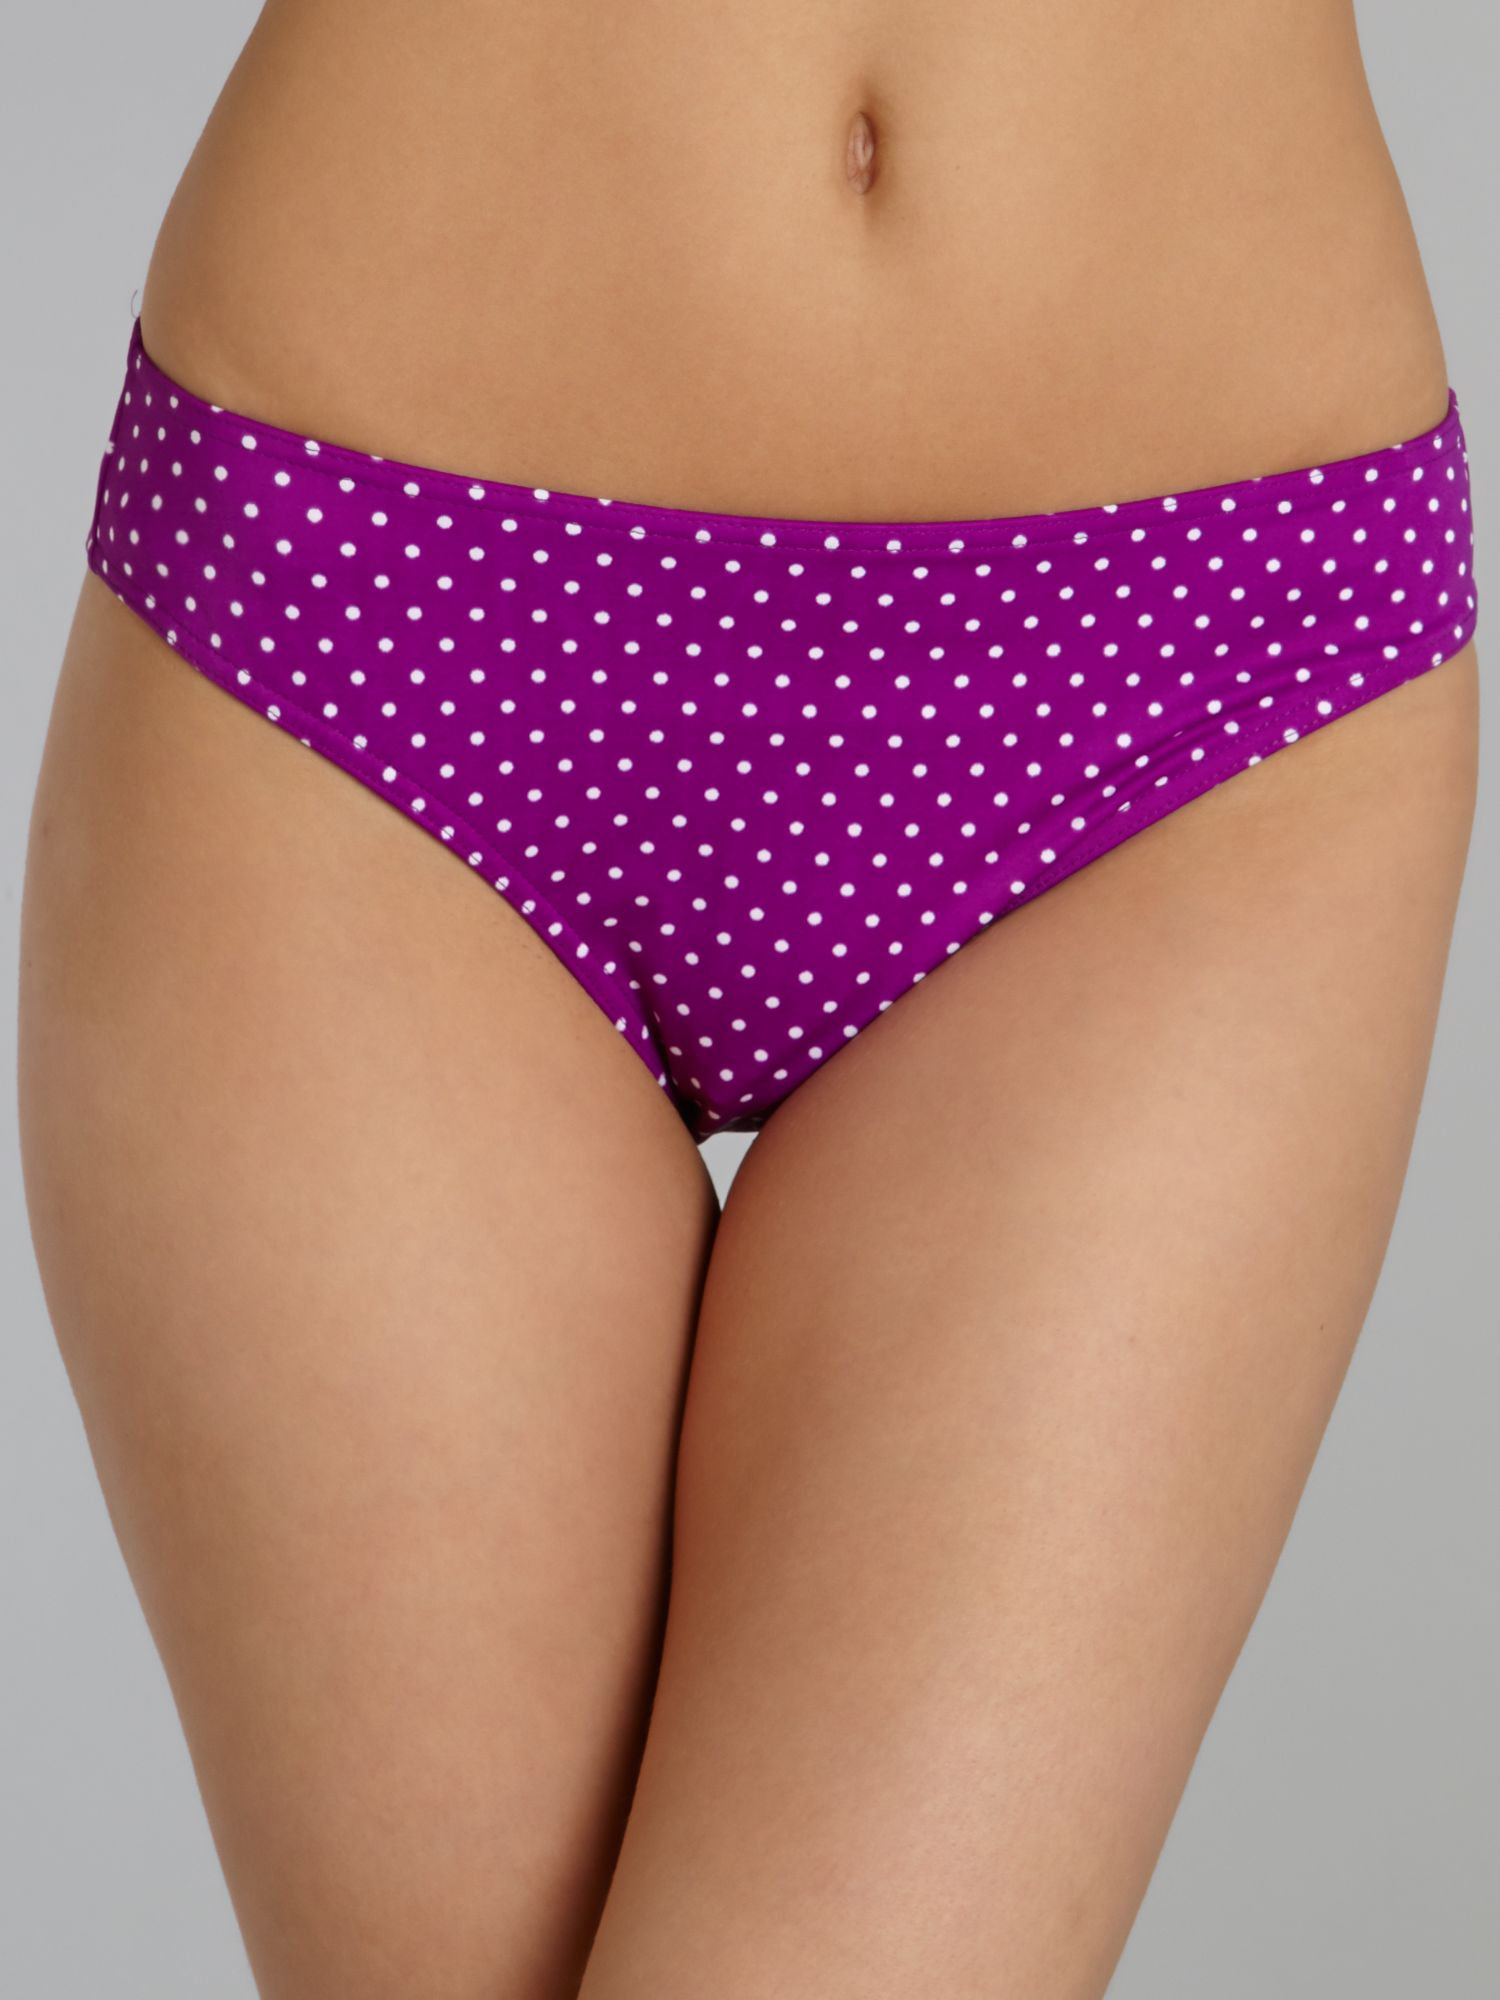 Pier polka range in purple